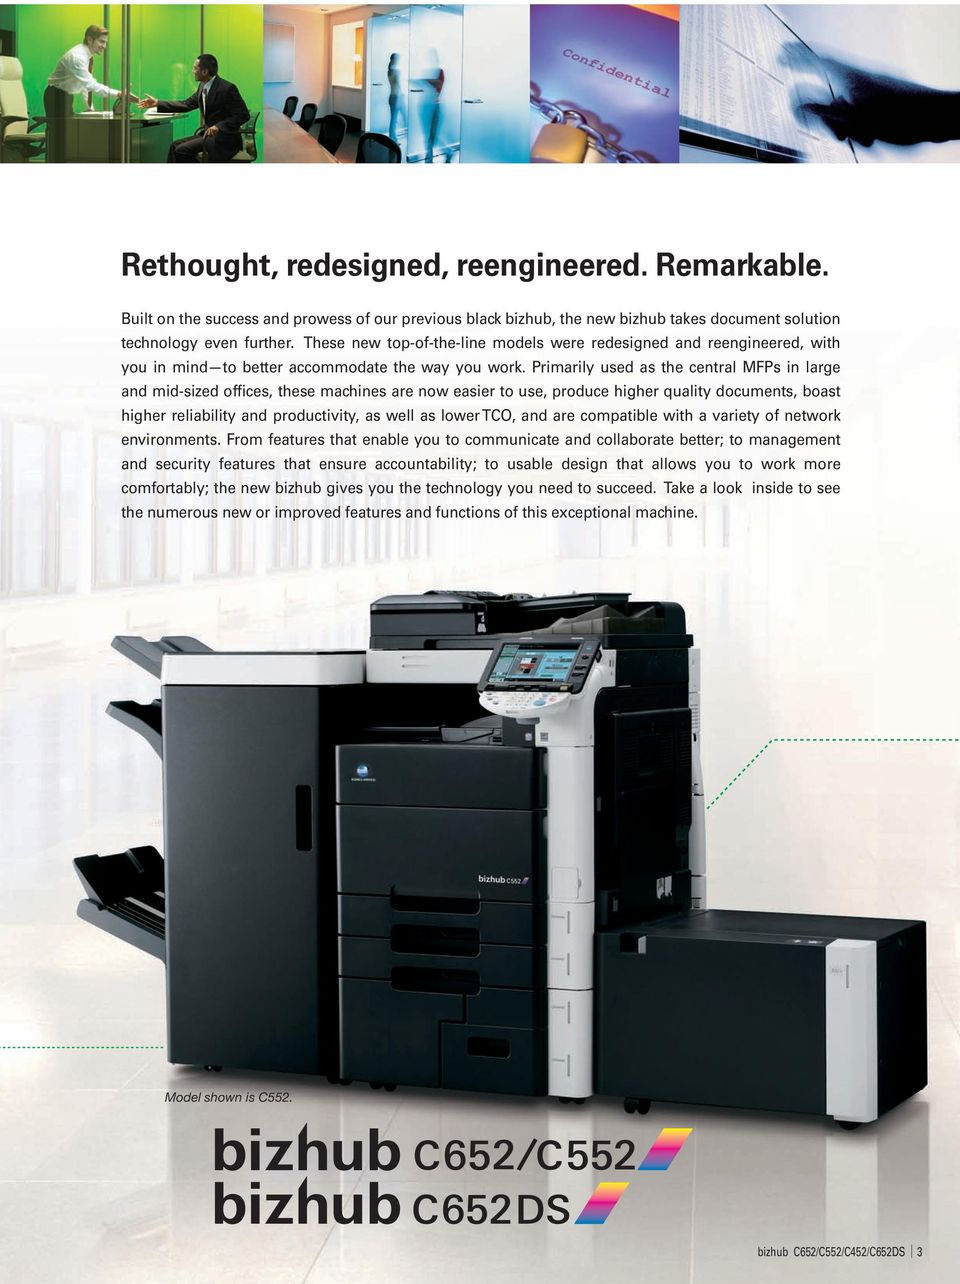 Primarily used as the central MFPs in large and mid-sized offices, these machines are now easier to use, produce higher quality documents, boast higher reliability and productivity, as well as lower